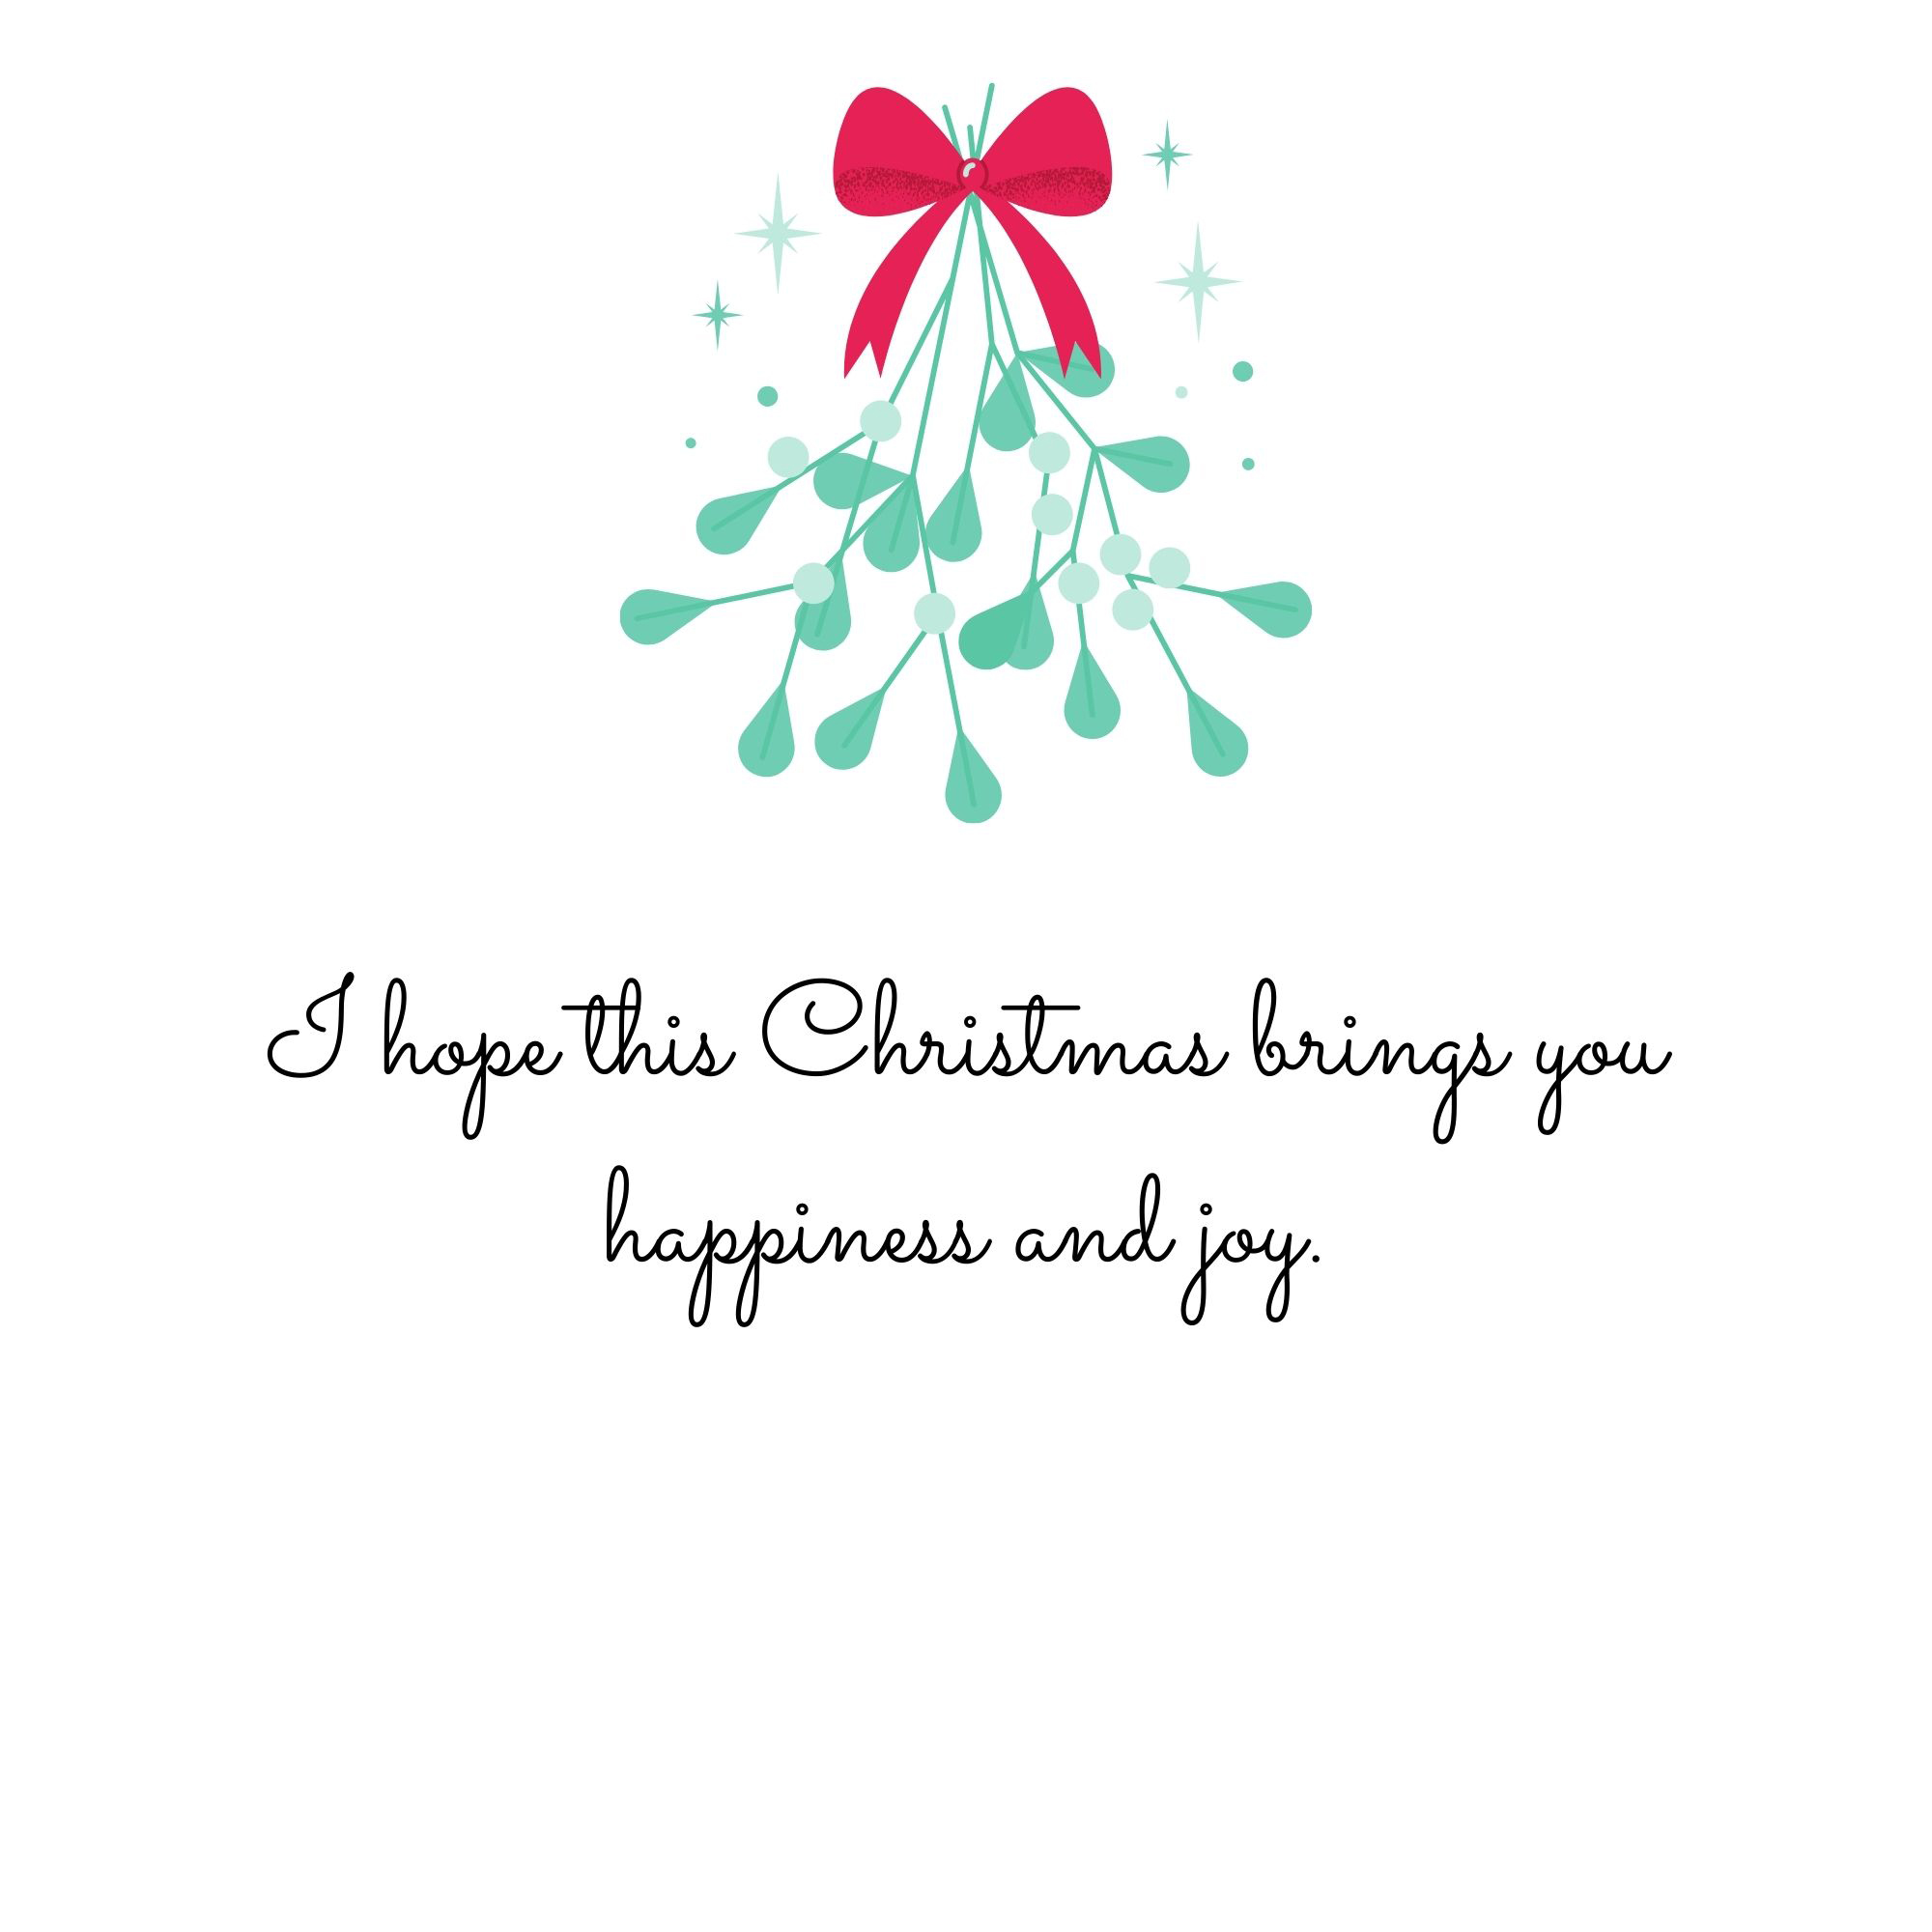 I Hope This Christmas Brings Happiness and Joy